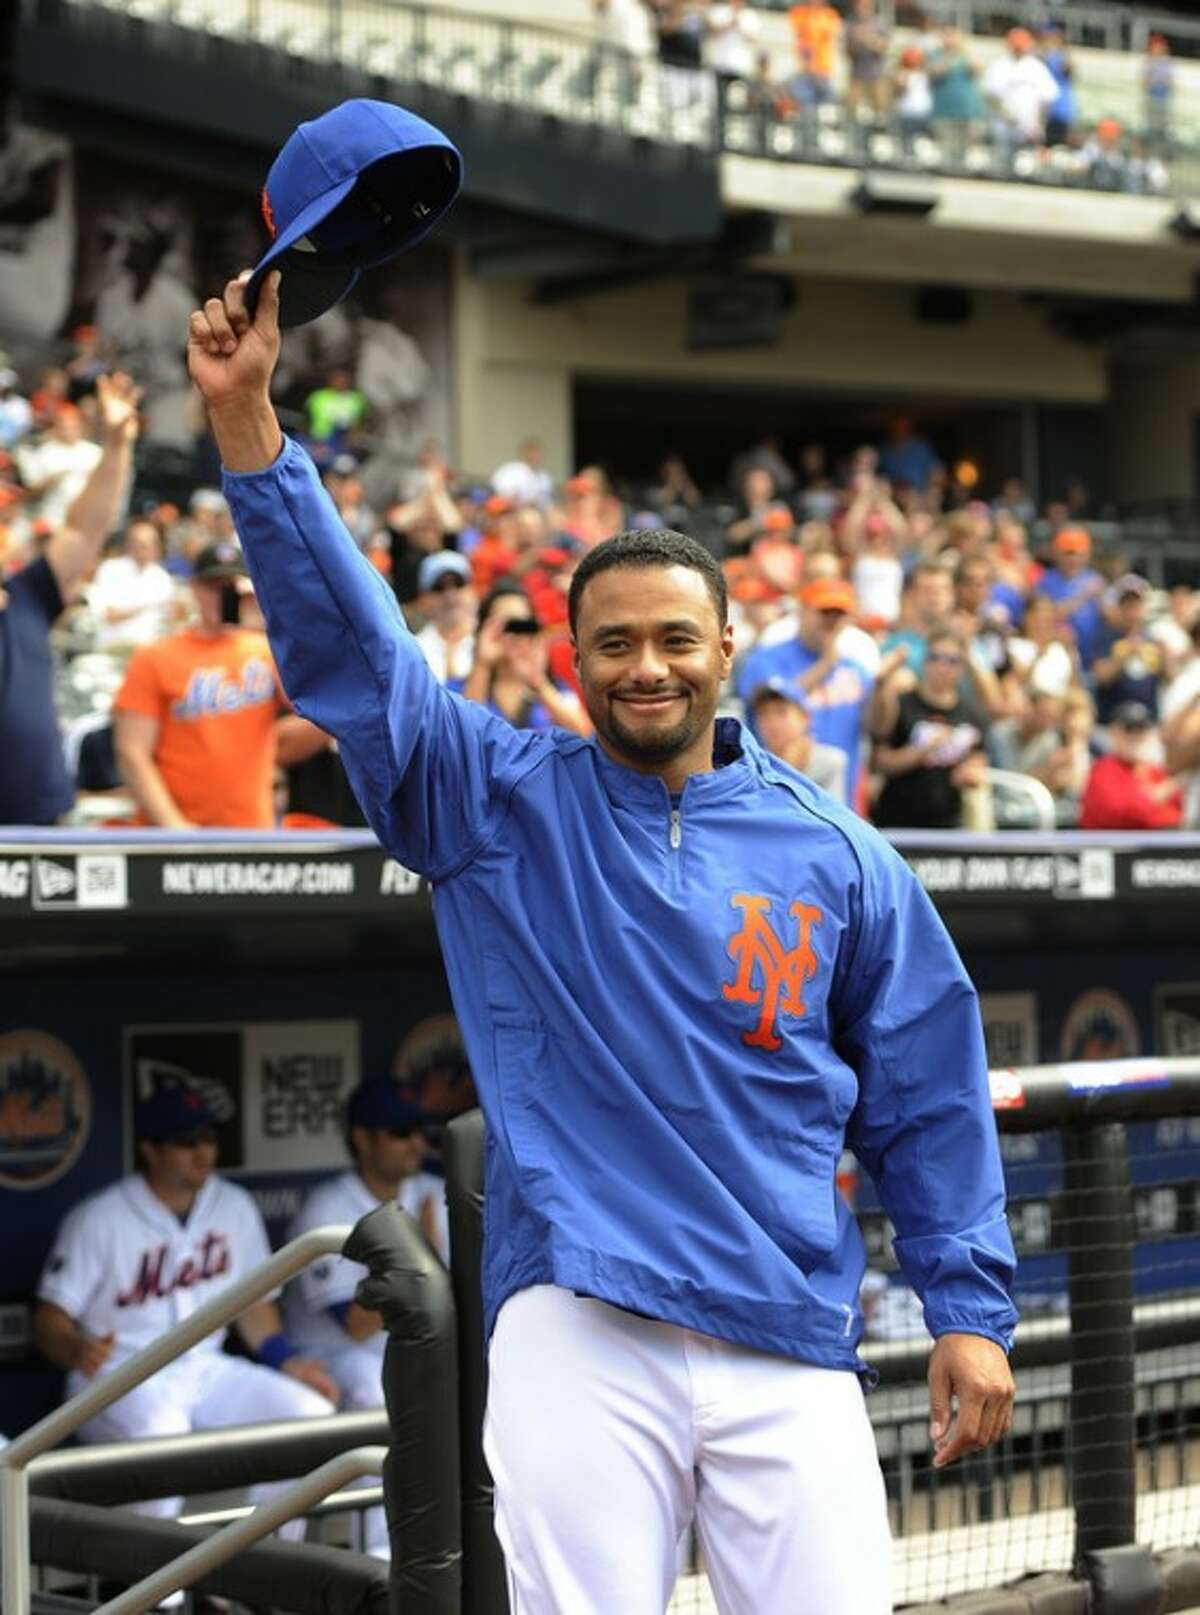 New York Mets' Johan Santana waves his cap to the cheers of the fans after a video was shown before the baseball game against the St. Louis Cardinals, on Saturday, June 2, 2012, at Citi Field in New York, in tribute to his no-hitter the night before. (AP Photo/Kathy Kmonicek)